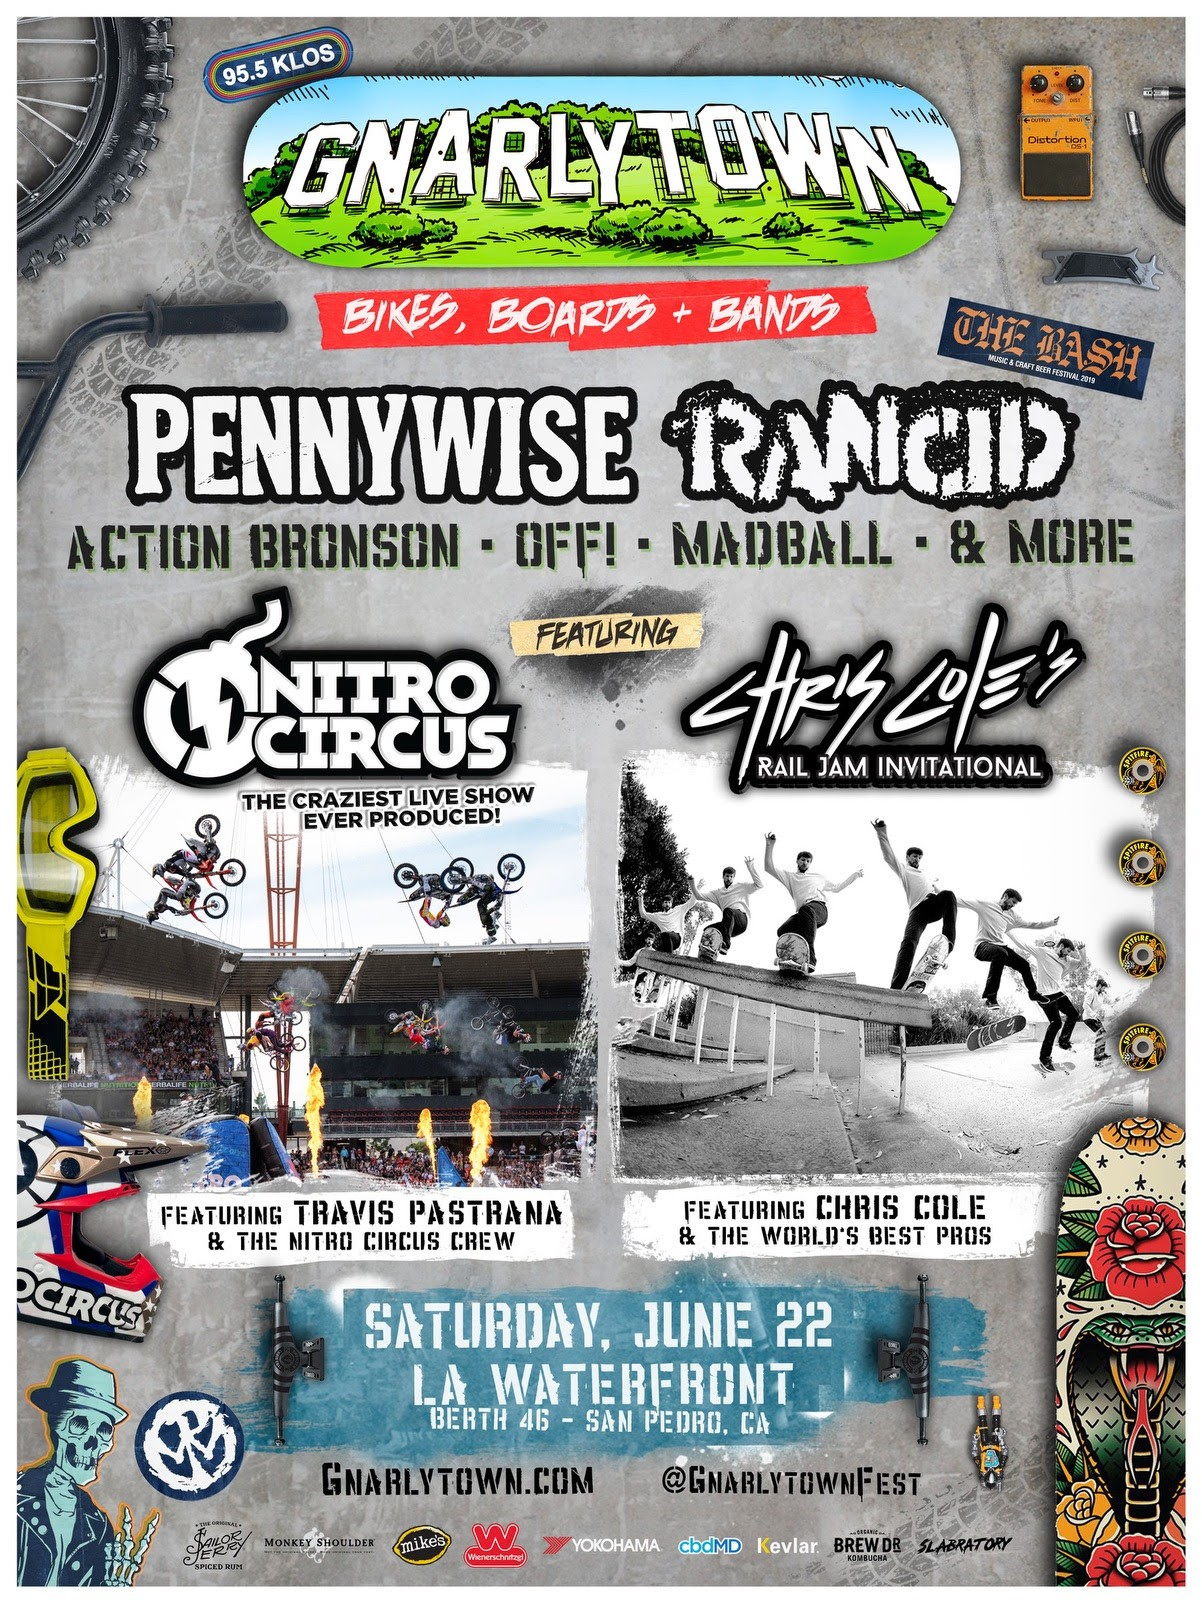 CHRIS COLE'S 'RAIL JAM INVITATIONAL' SCHEDULED FOR JUNE AT GNARLYTOWN FEST